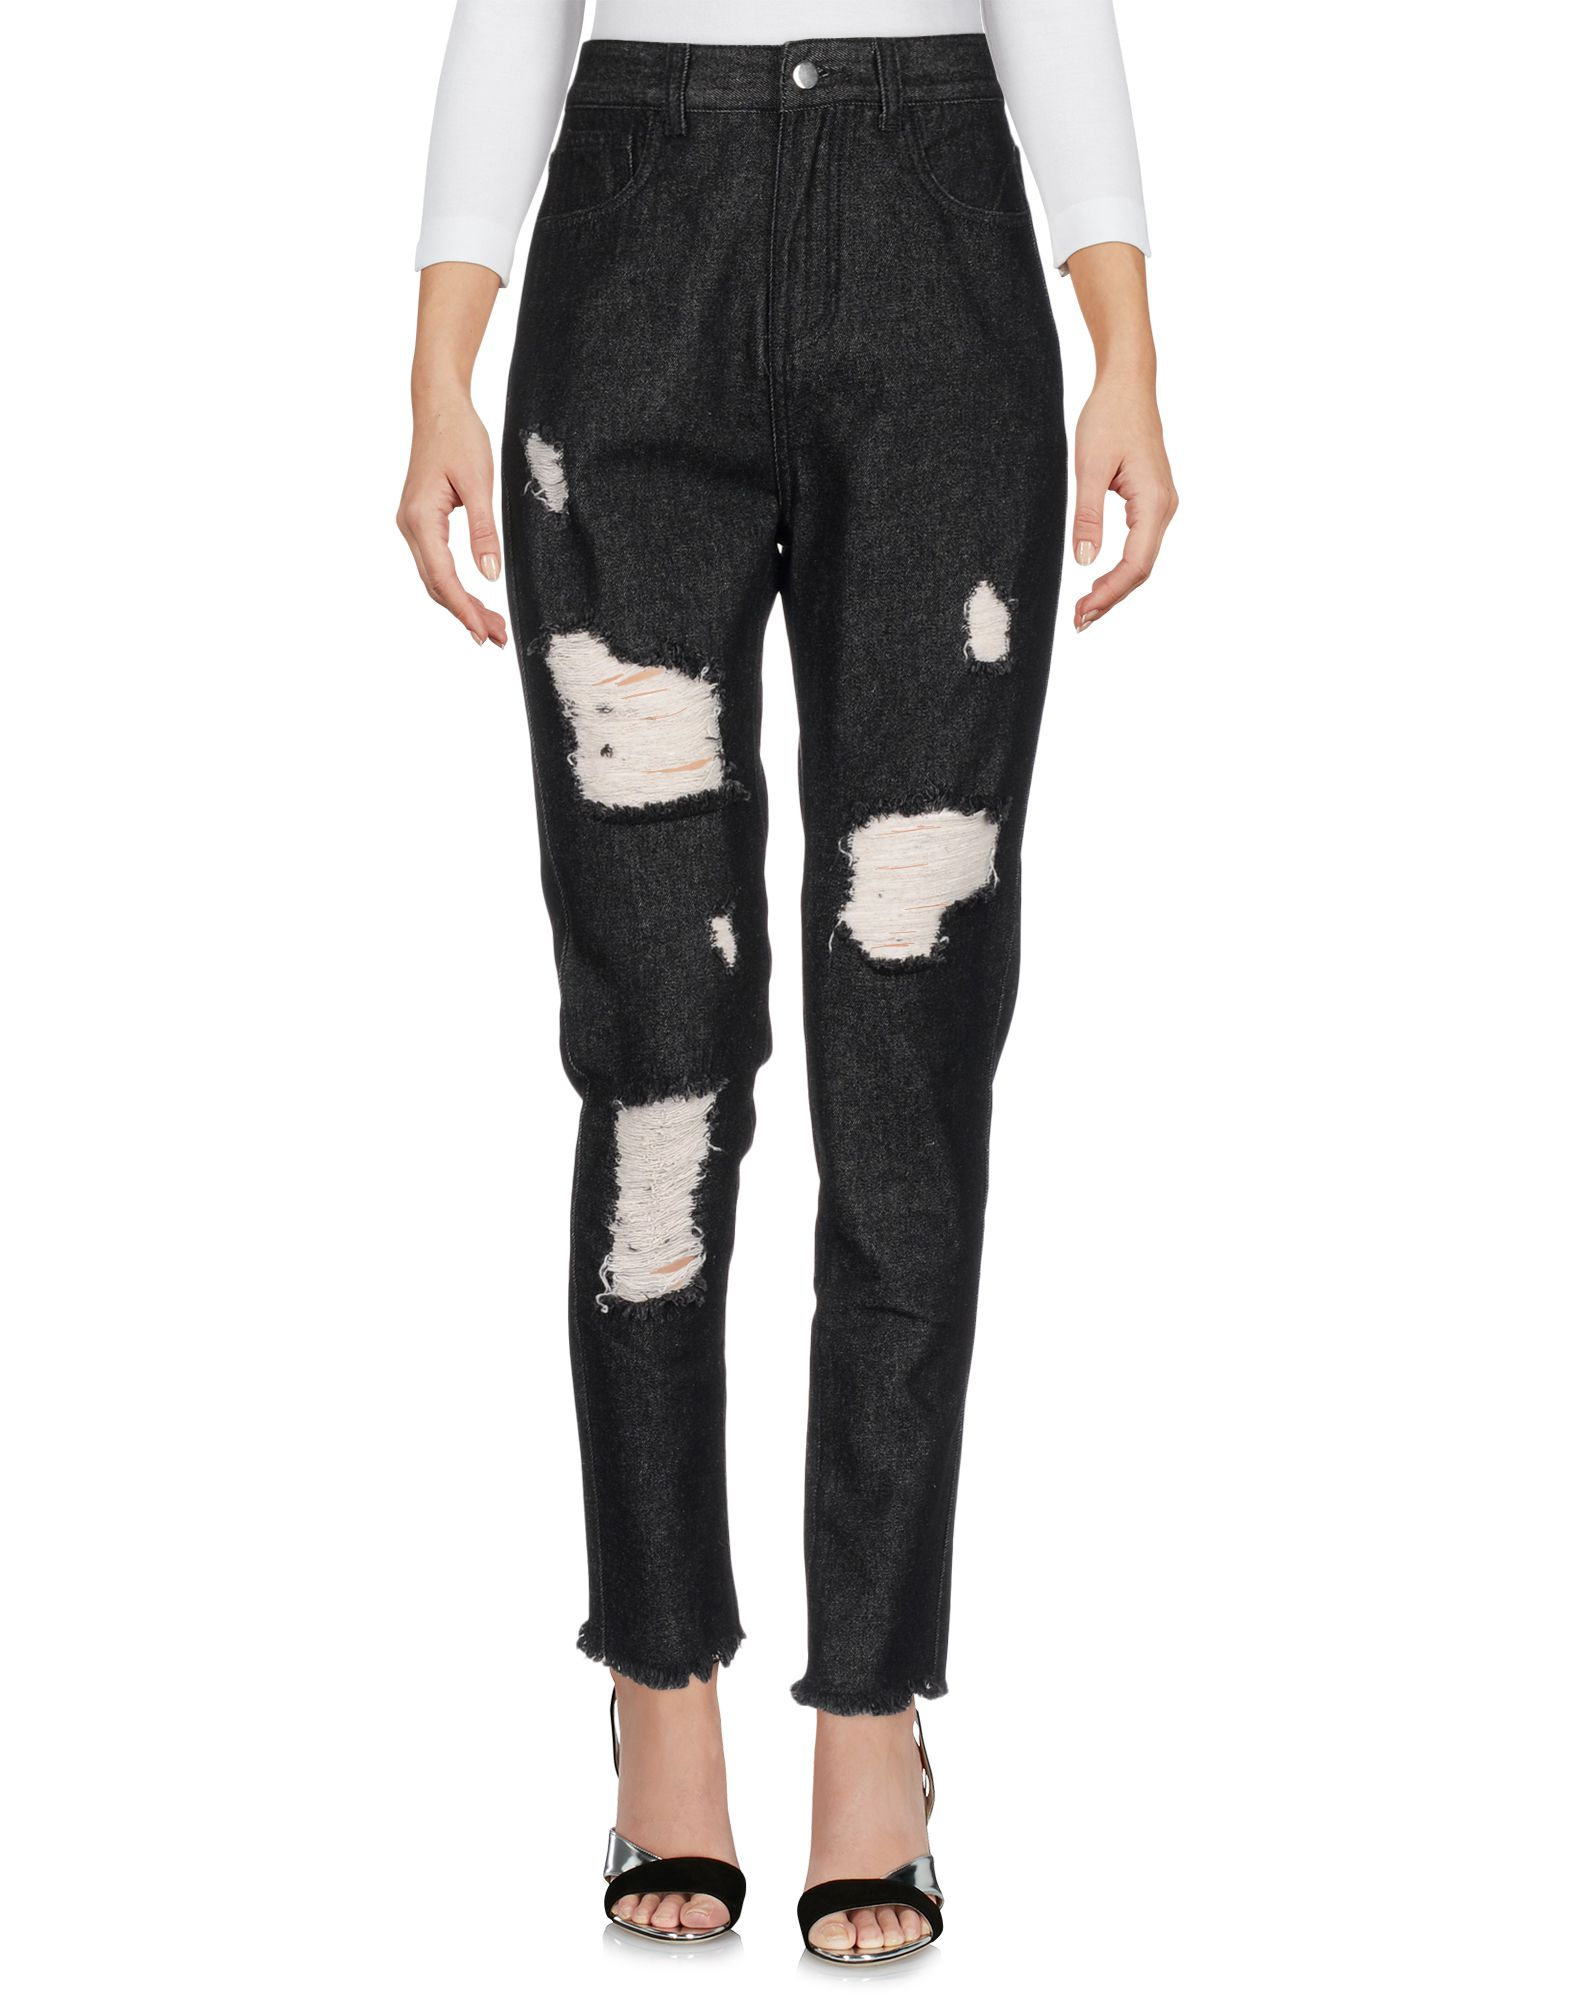 TPN Denim Pants in Black